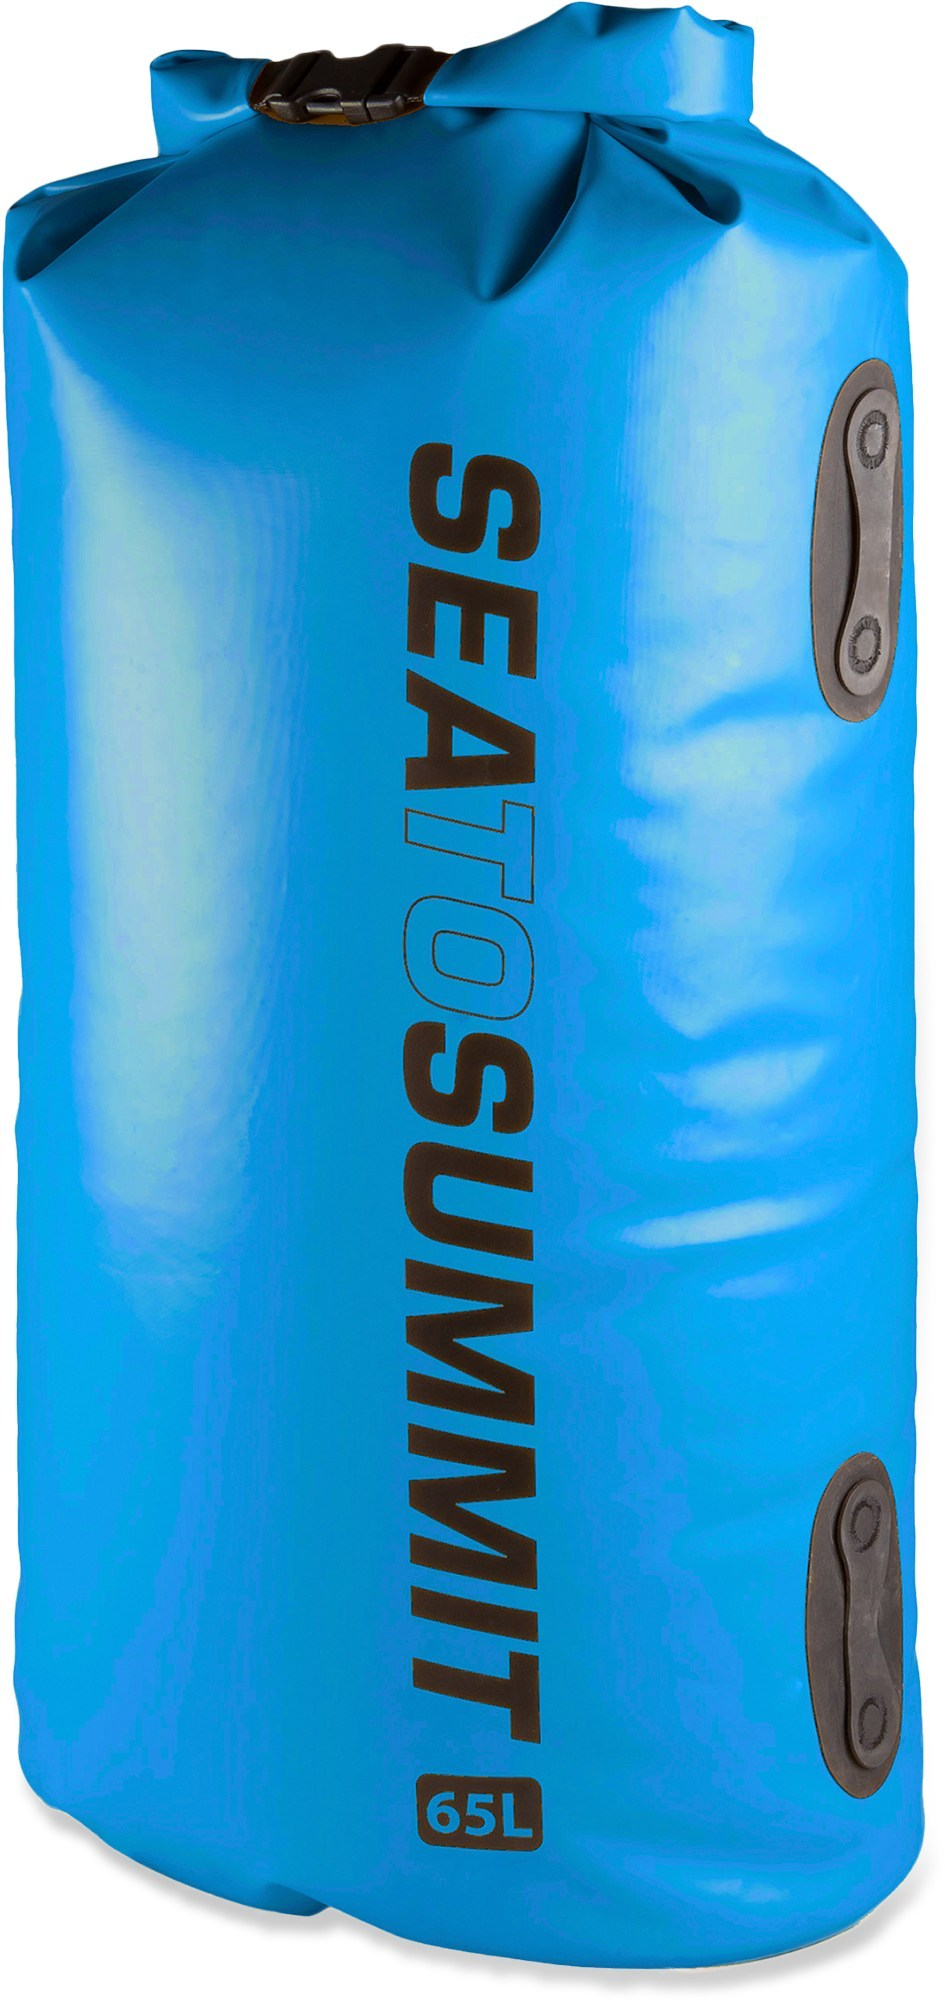 Sea to Summit Hydraulic Dry Bag - 65L